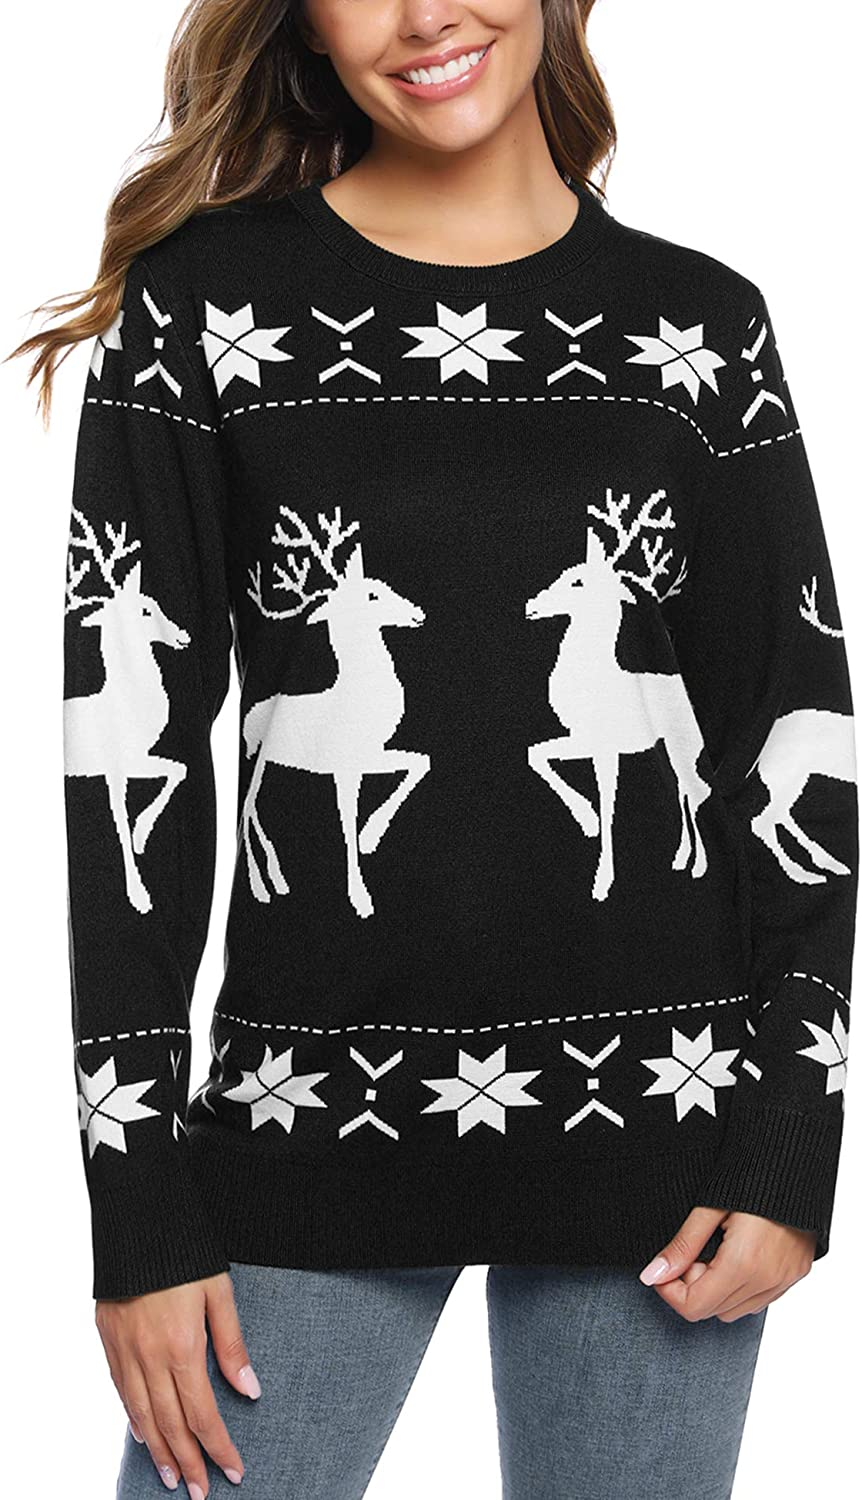 iClosam Women's Ugly Christmas Sweater Reindeer Snowflakes Sweaters Pullover Jumper